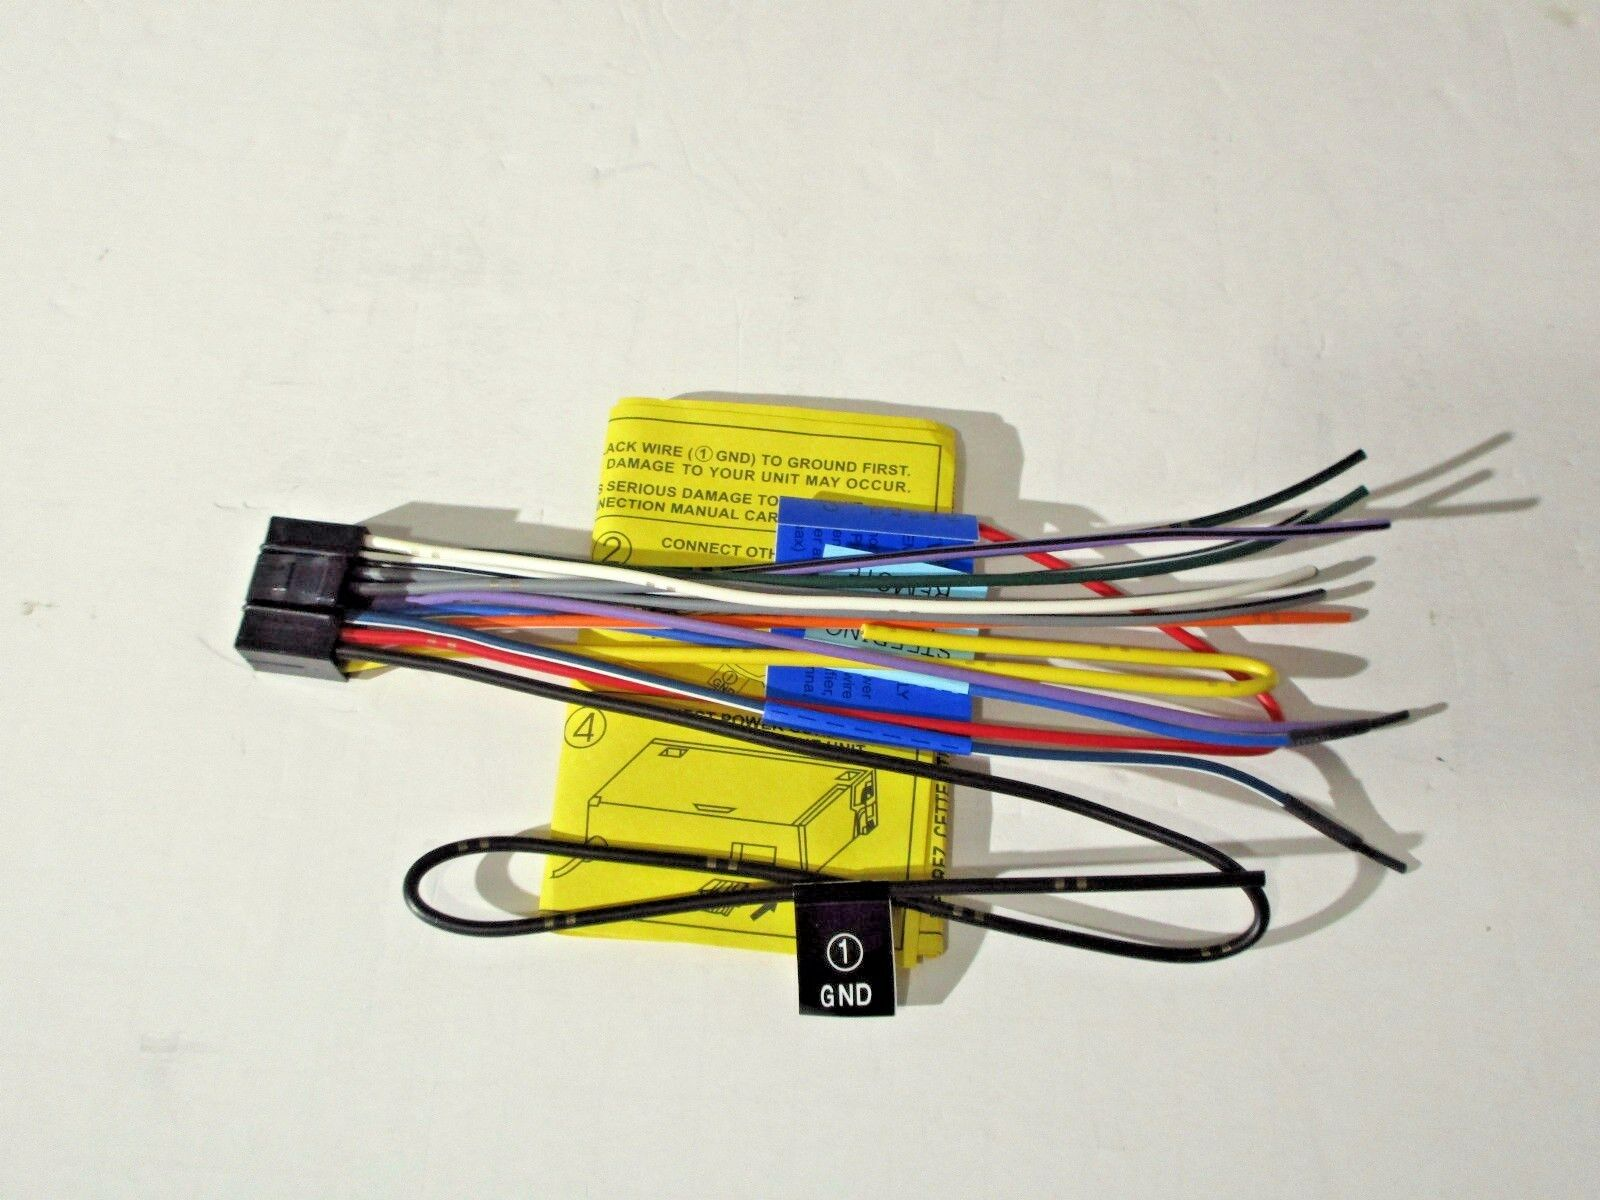 hight resolution of s l1600 jvc kd sr81bt cd receiver with auxilary input bluetooth ebay wiring harness diagram